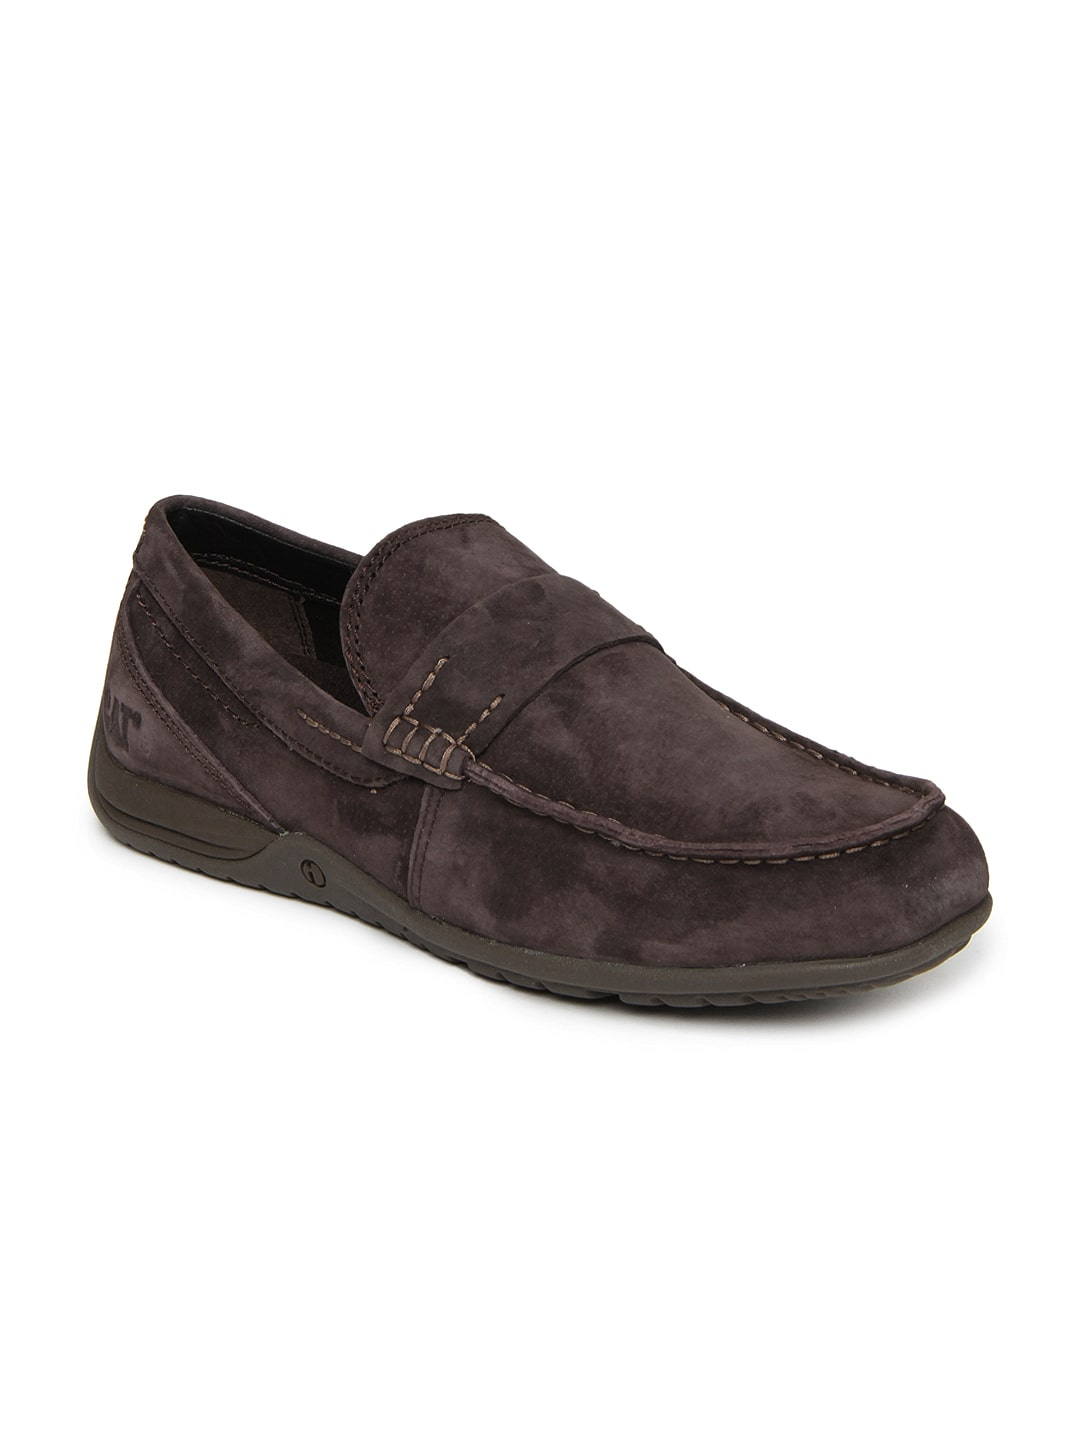 cat coffee brown casual shoes